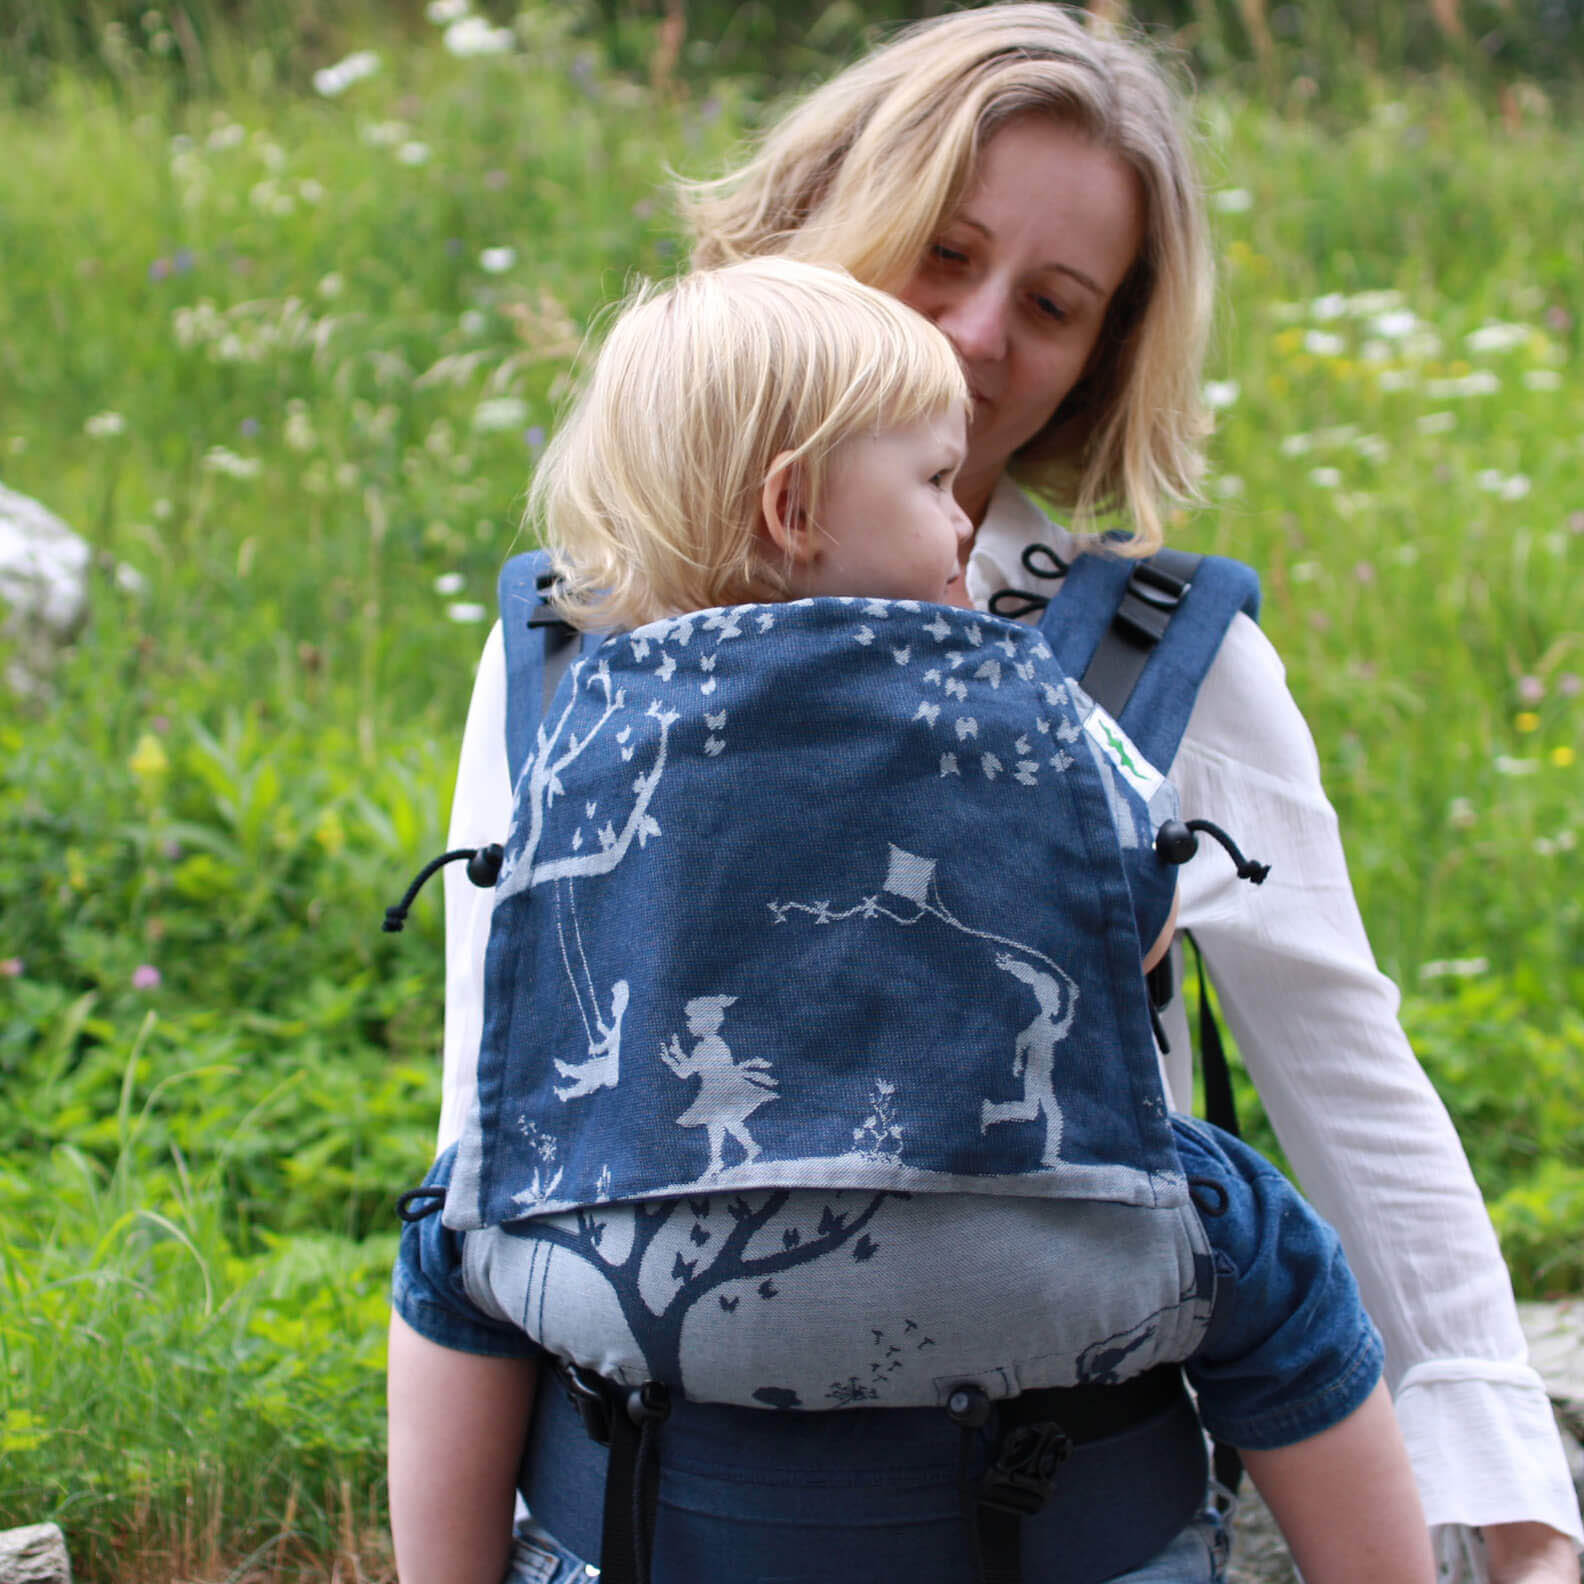 Buzzidil XL toddler carrier